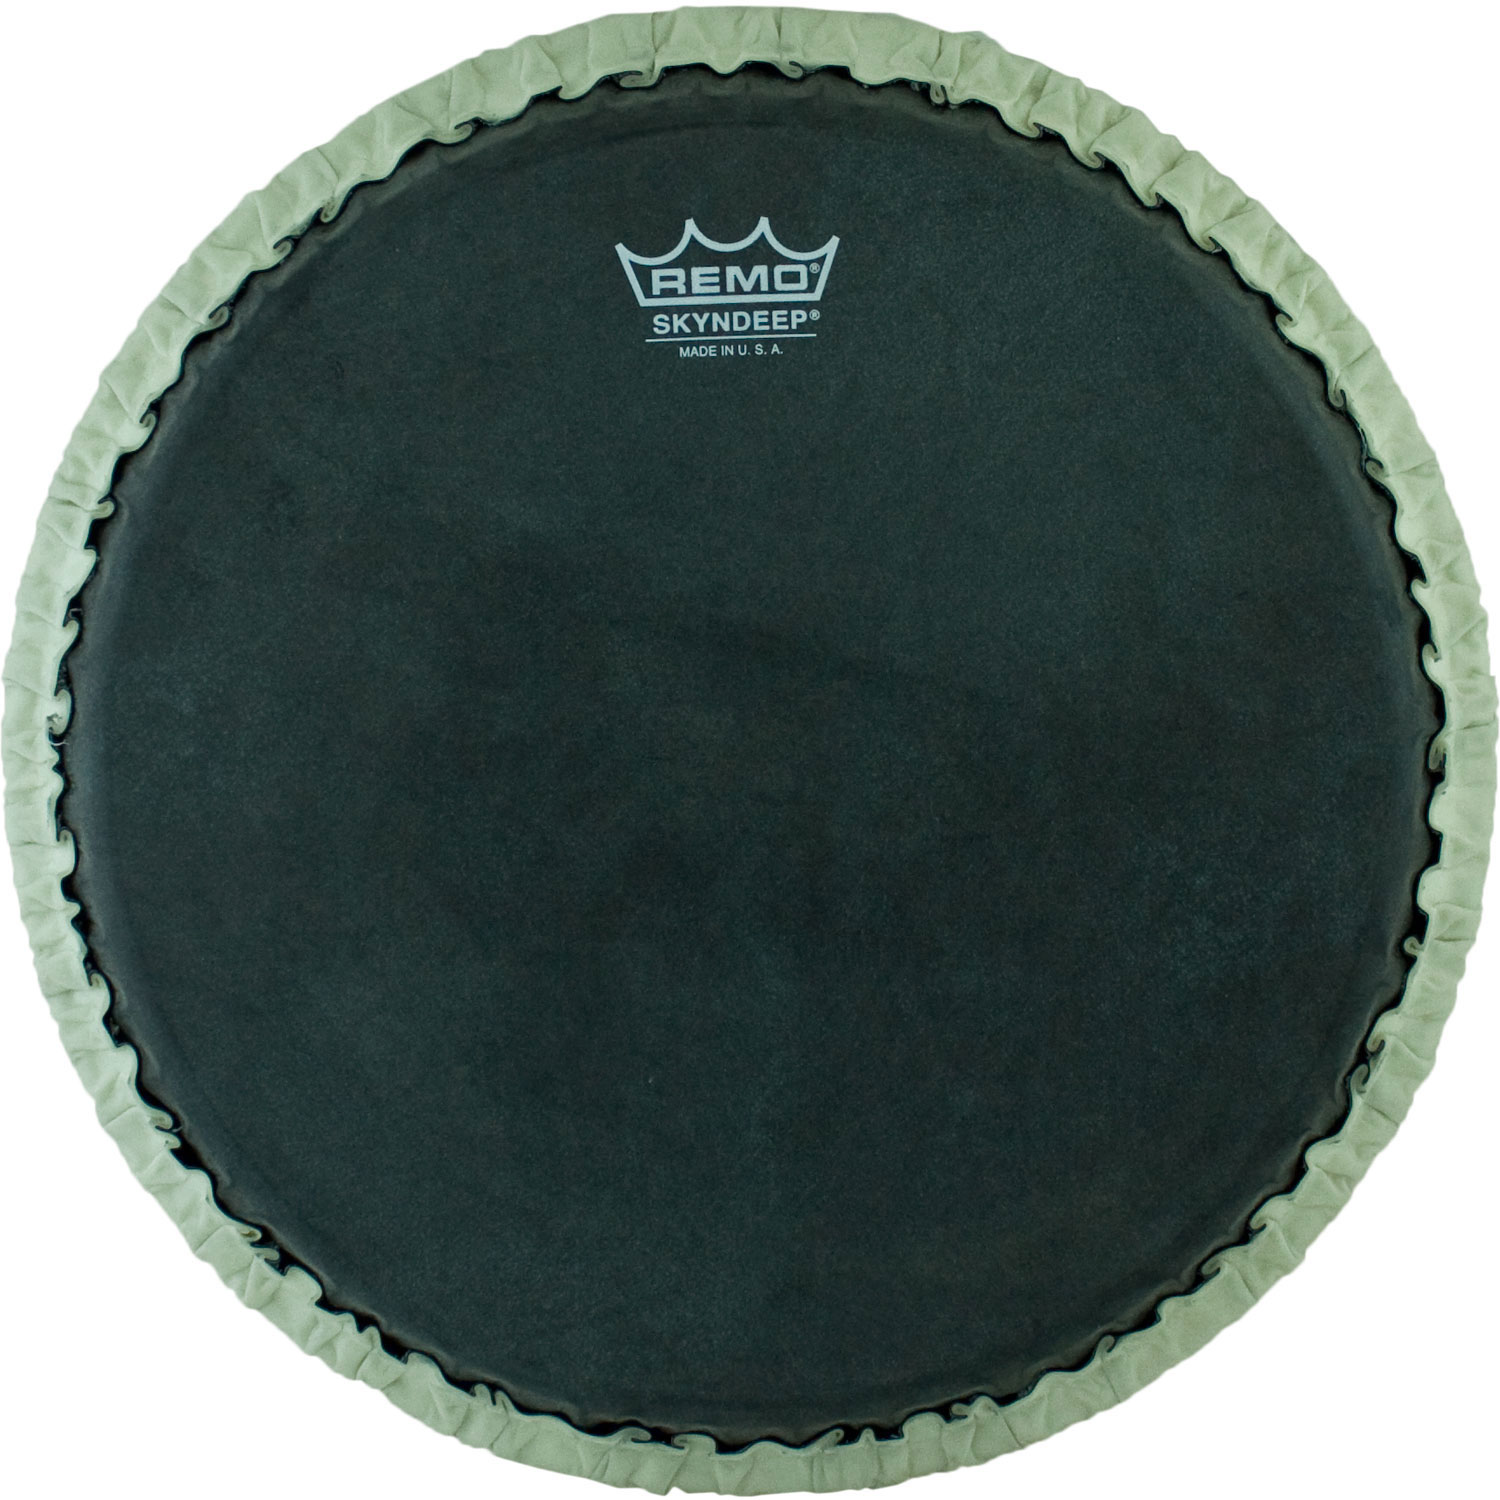 "Remo 13"" Tucked Skyndeep Conga Drum Head with Black Calfskin Graphic"